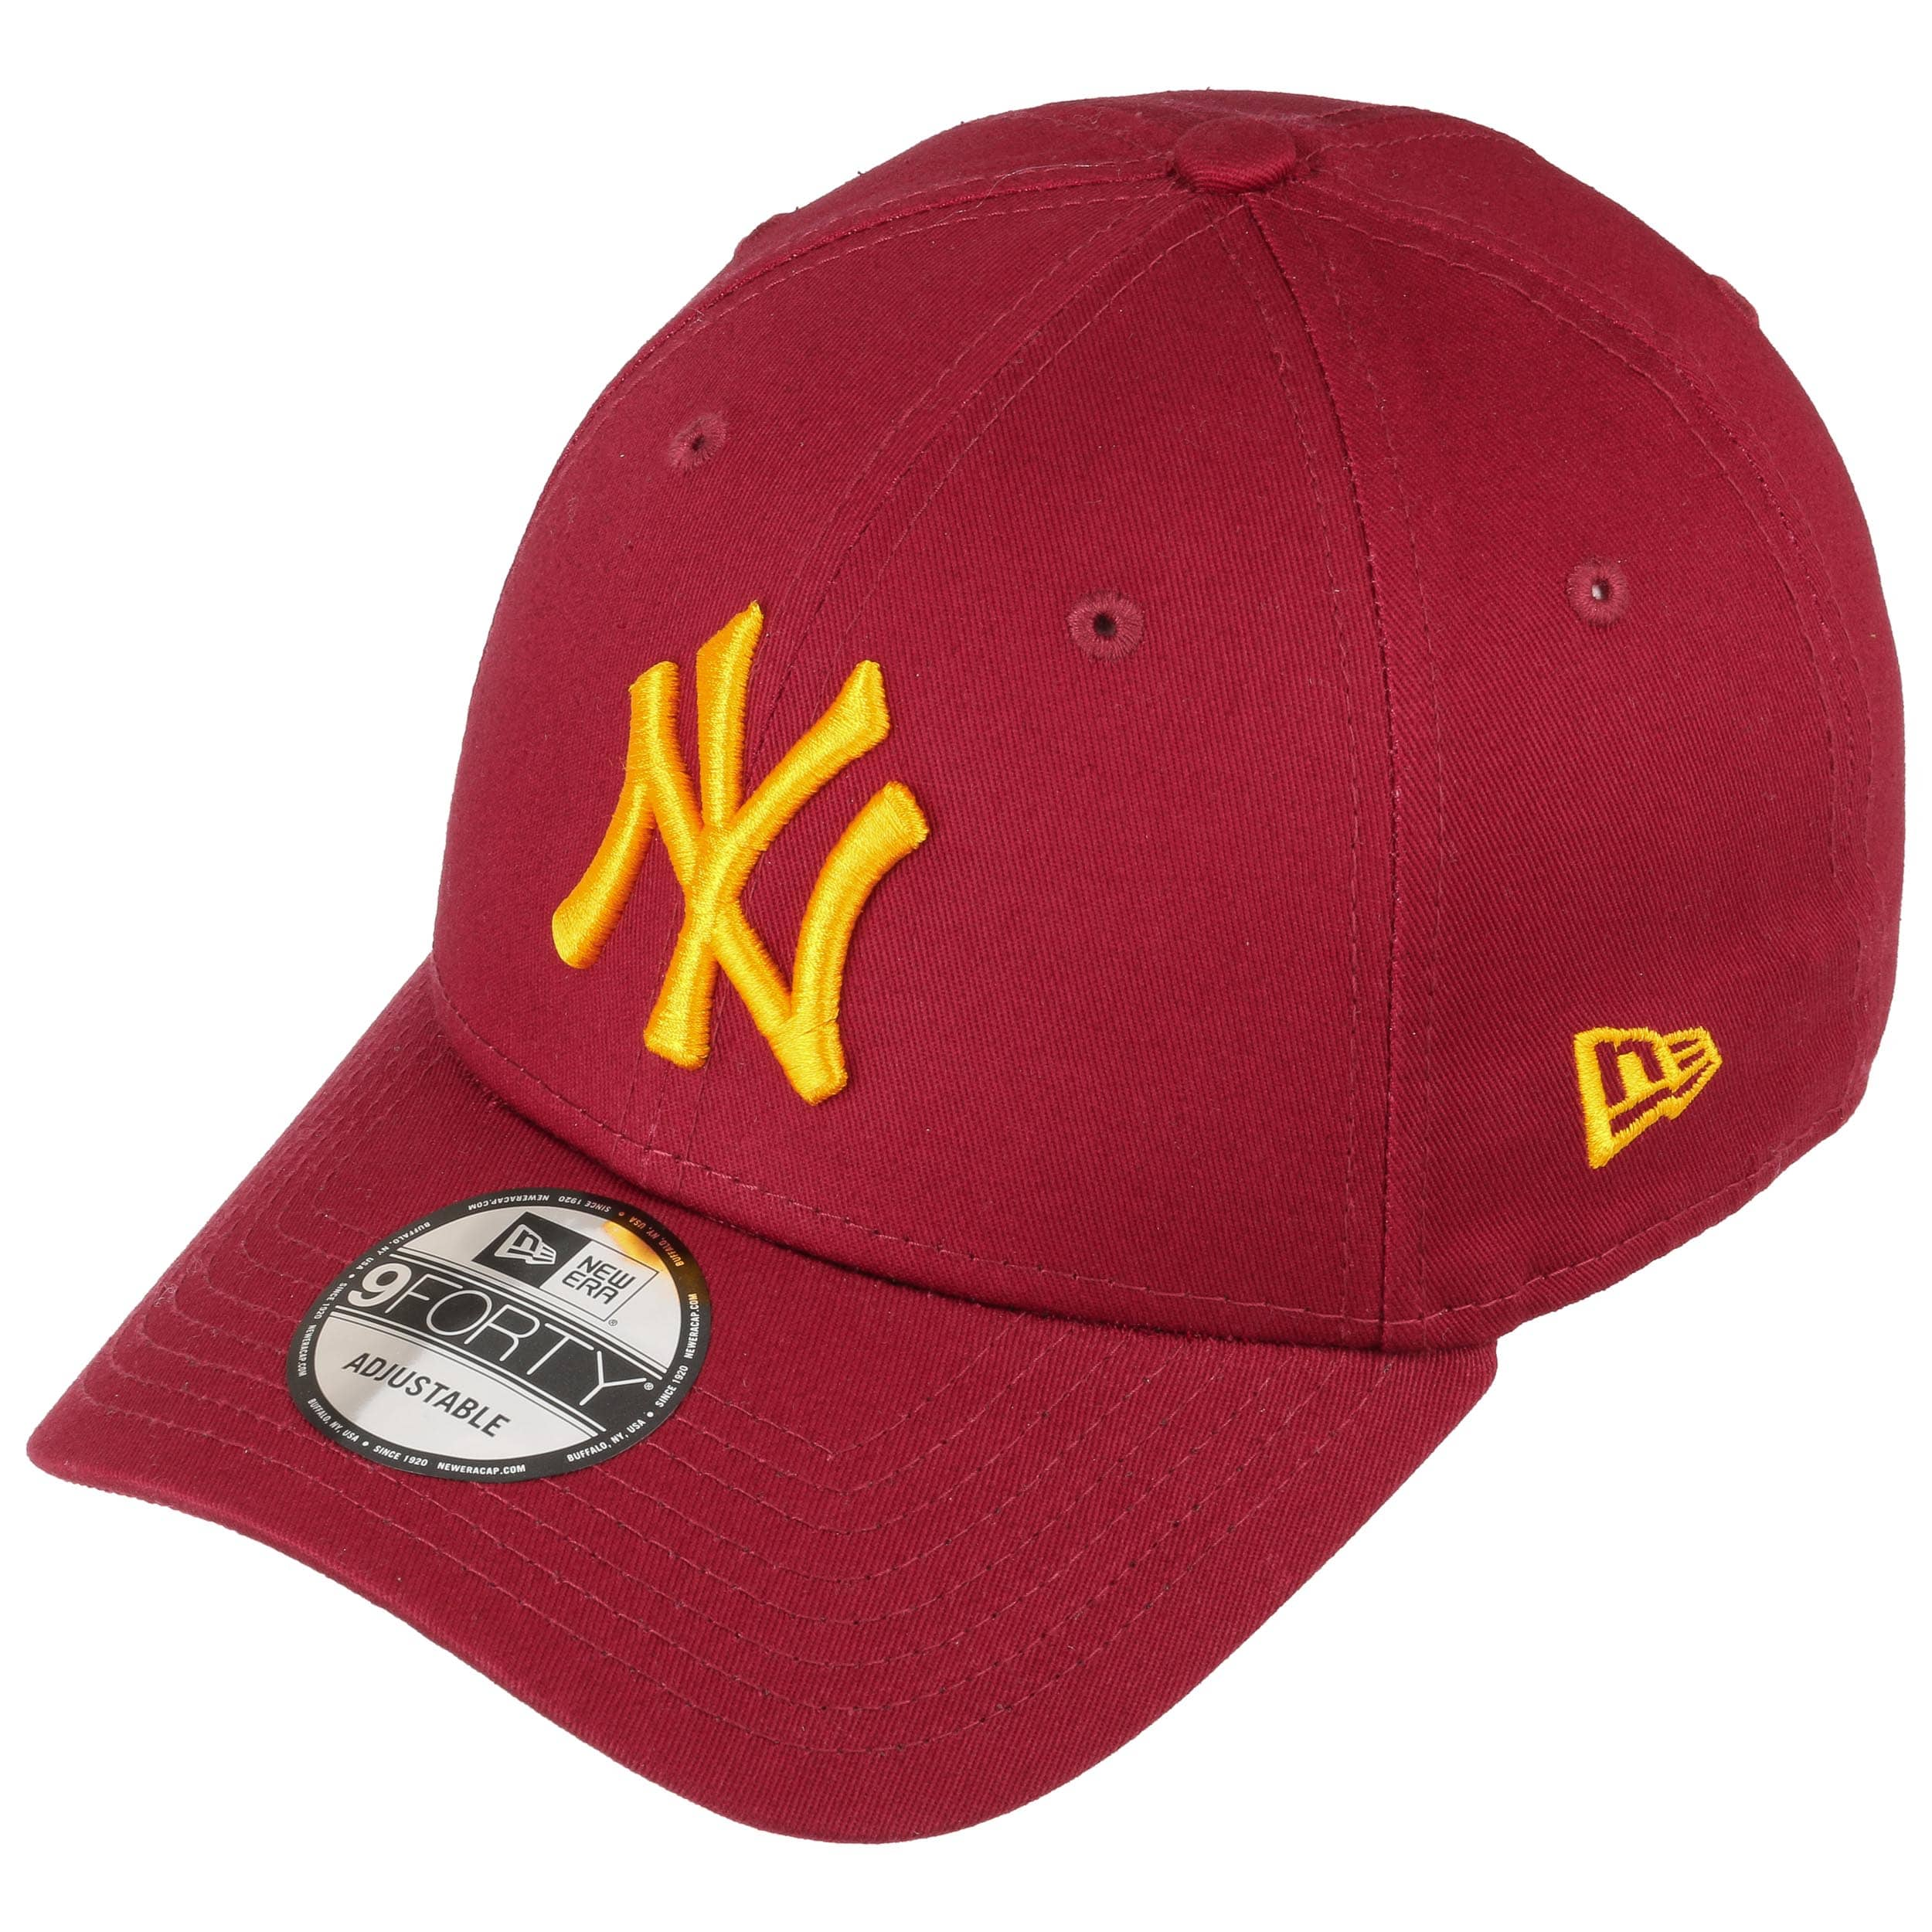 179490af4b5f Casquette 9Forty Yankees by New Era - bordeaux 1 ...